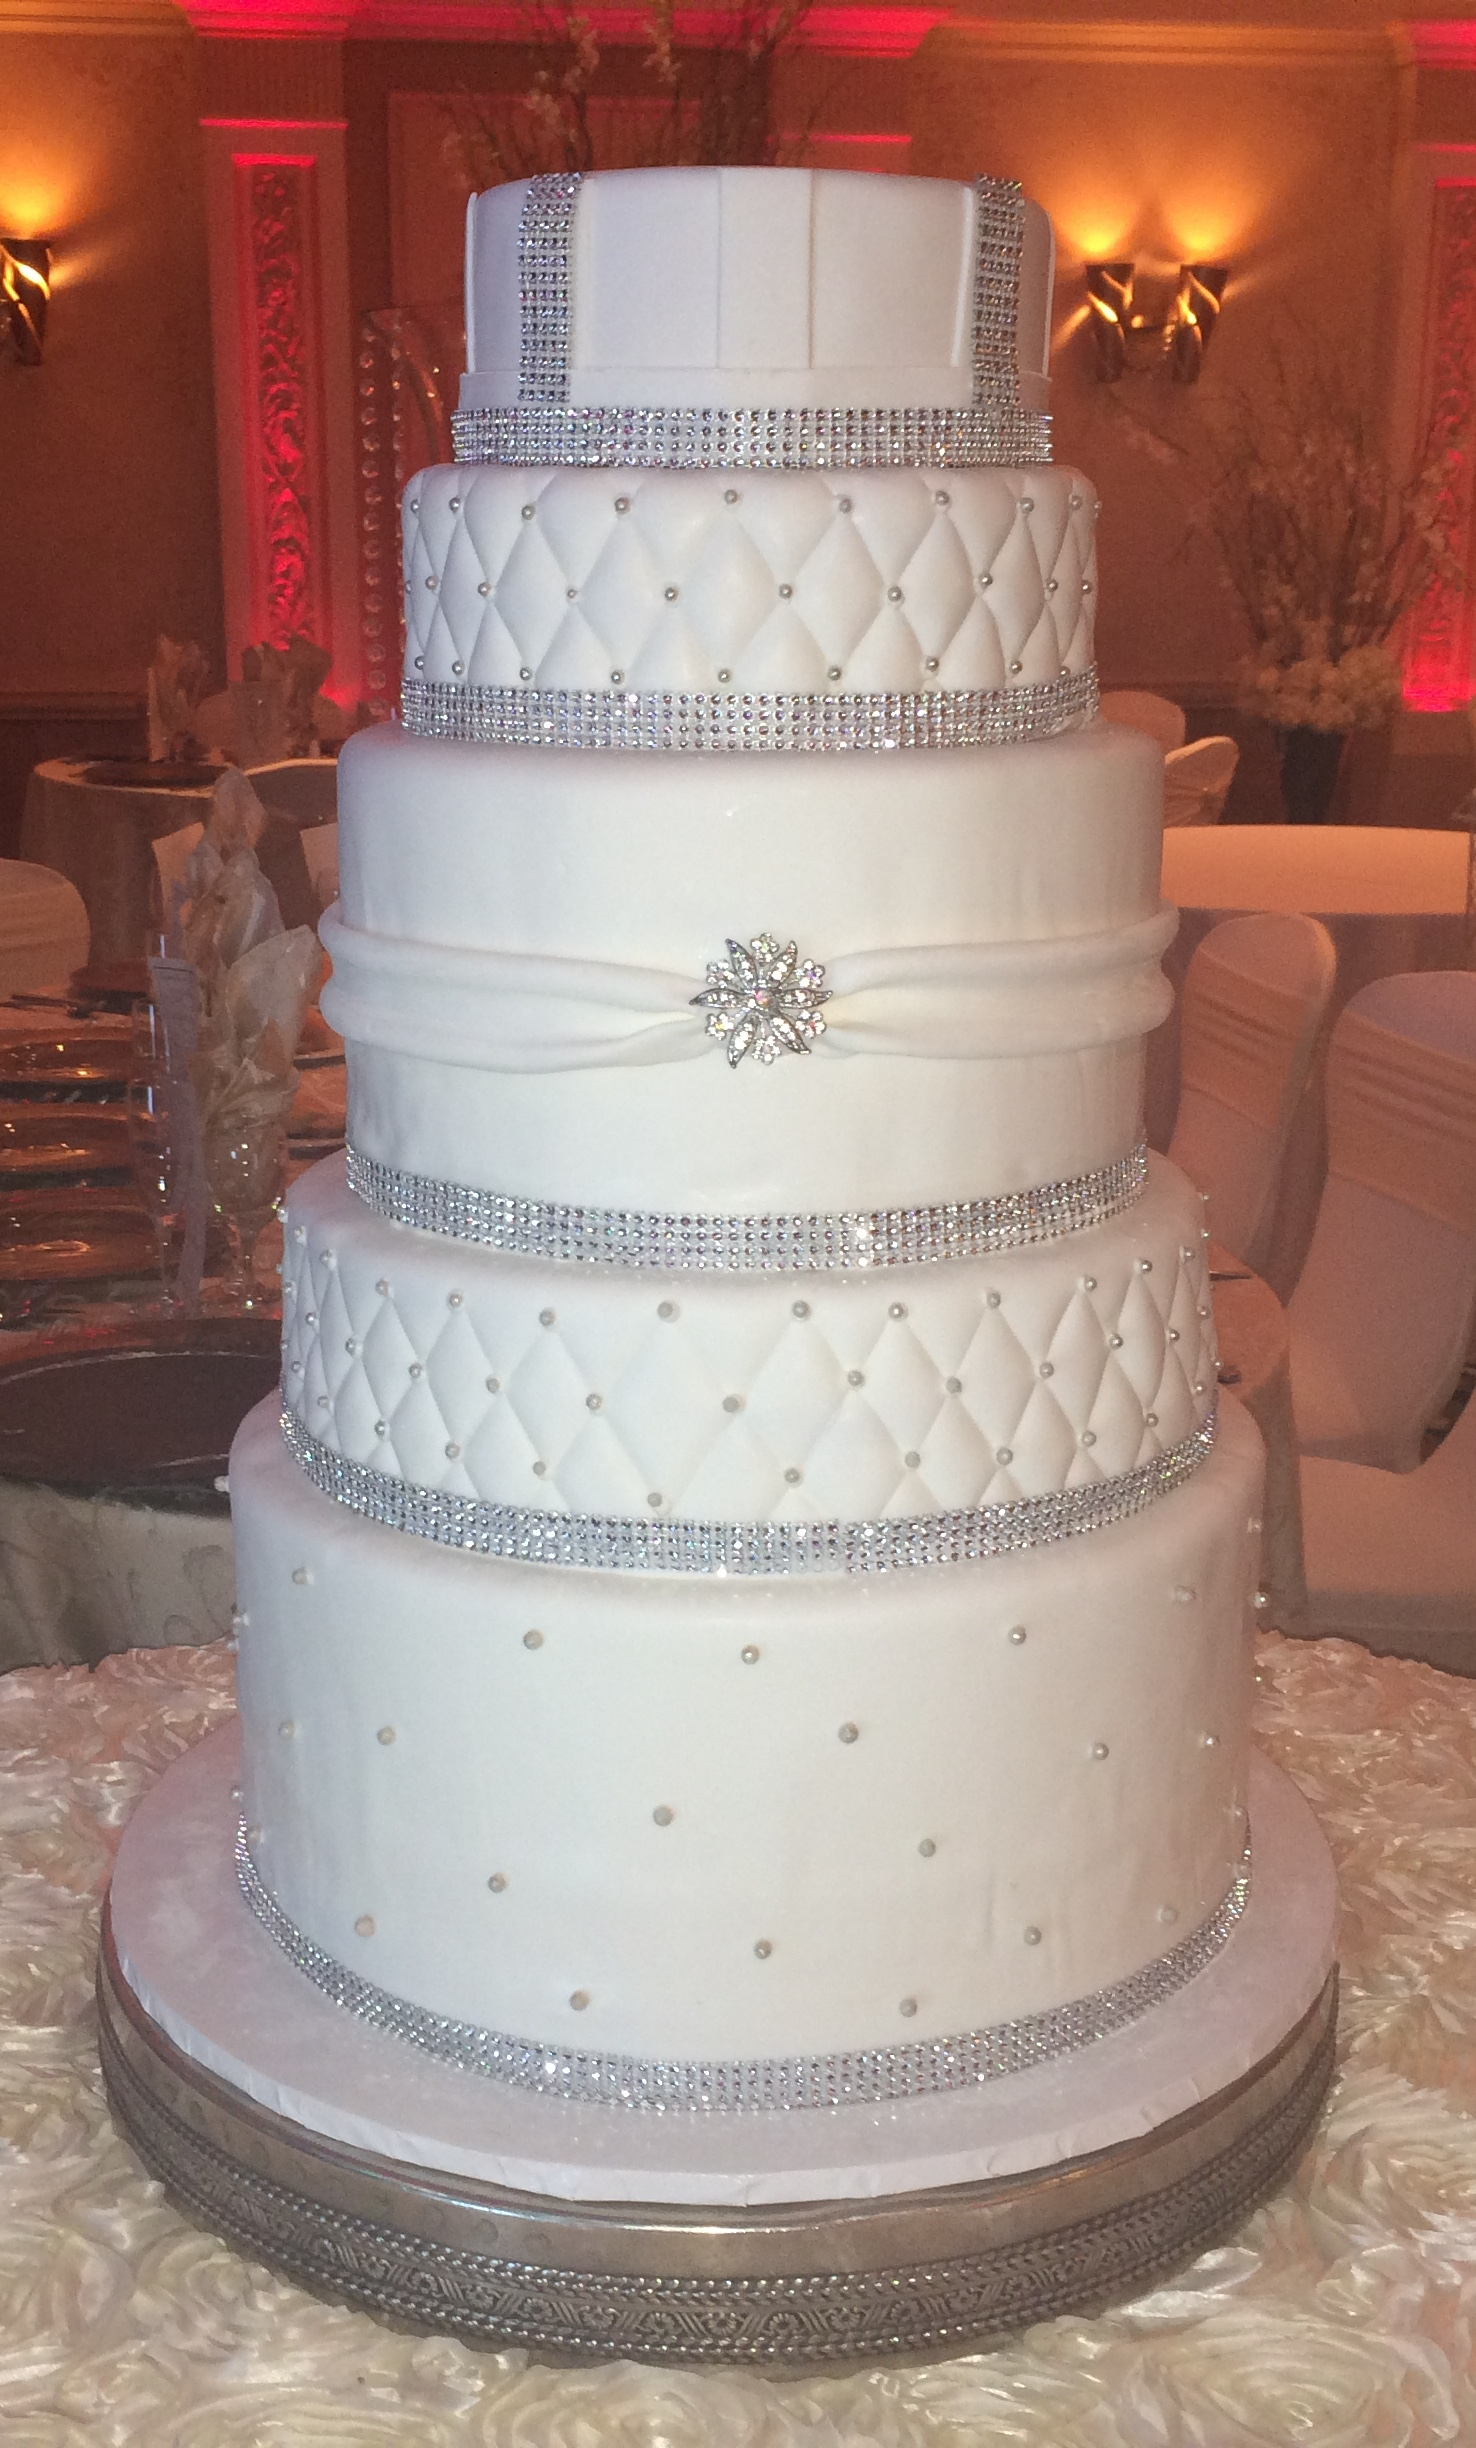 7Tier.Rolled Fondant. Doubled. Silver Pearls.Quilted.Doubled & Wrapped w Brooch. Quilted Silver. Rolled Fondant Stripes.Faux Crystals.jpg